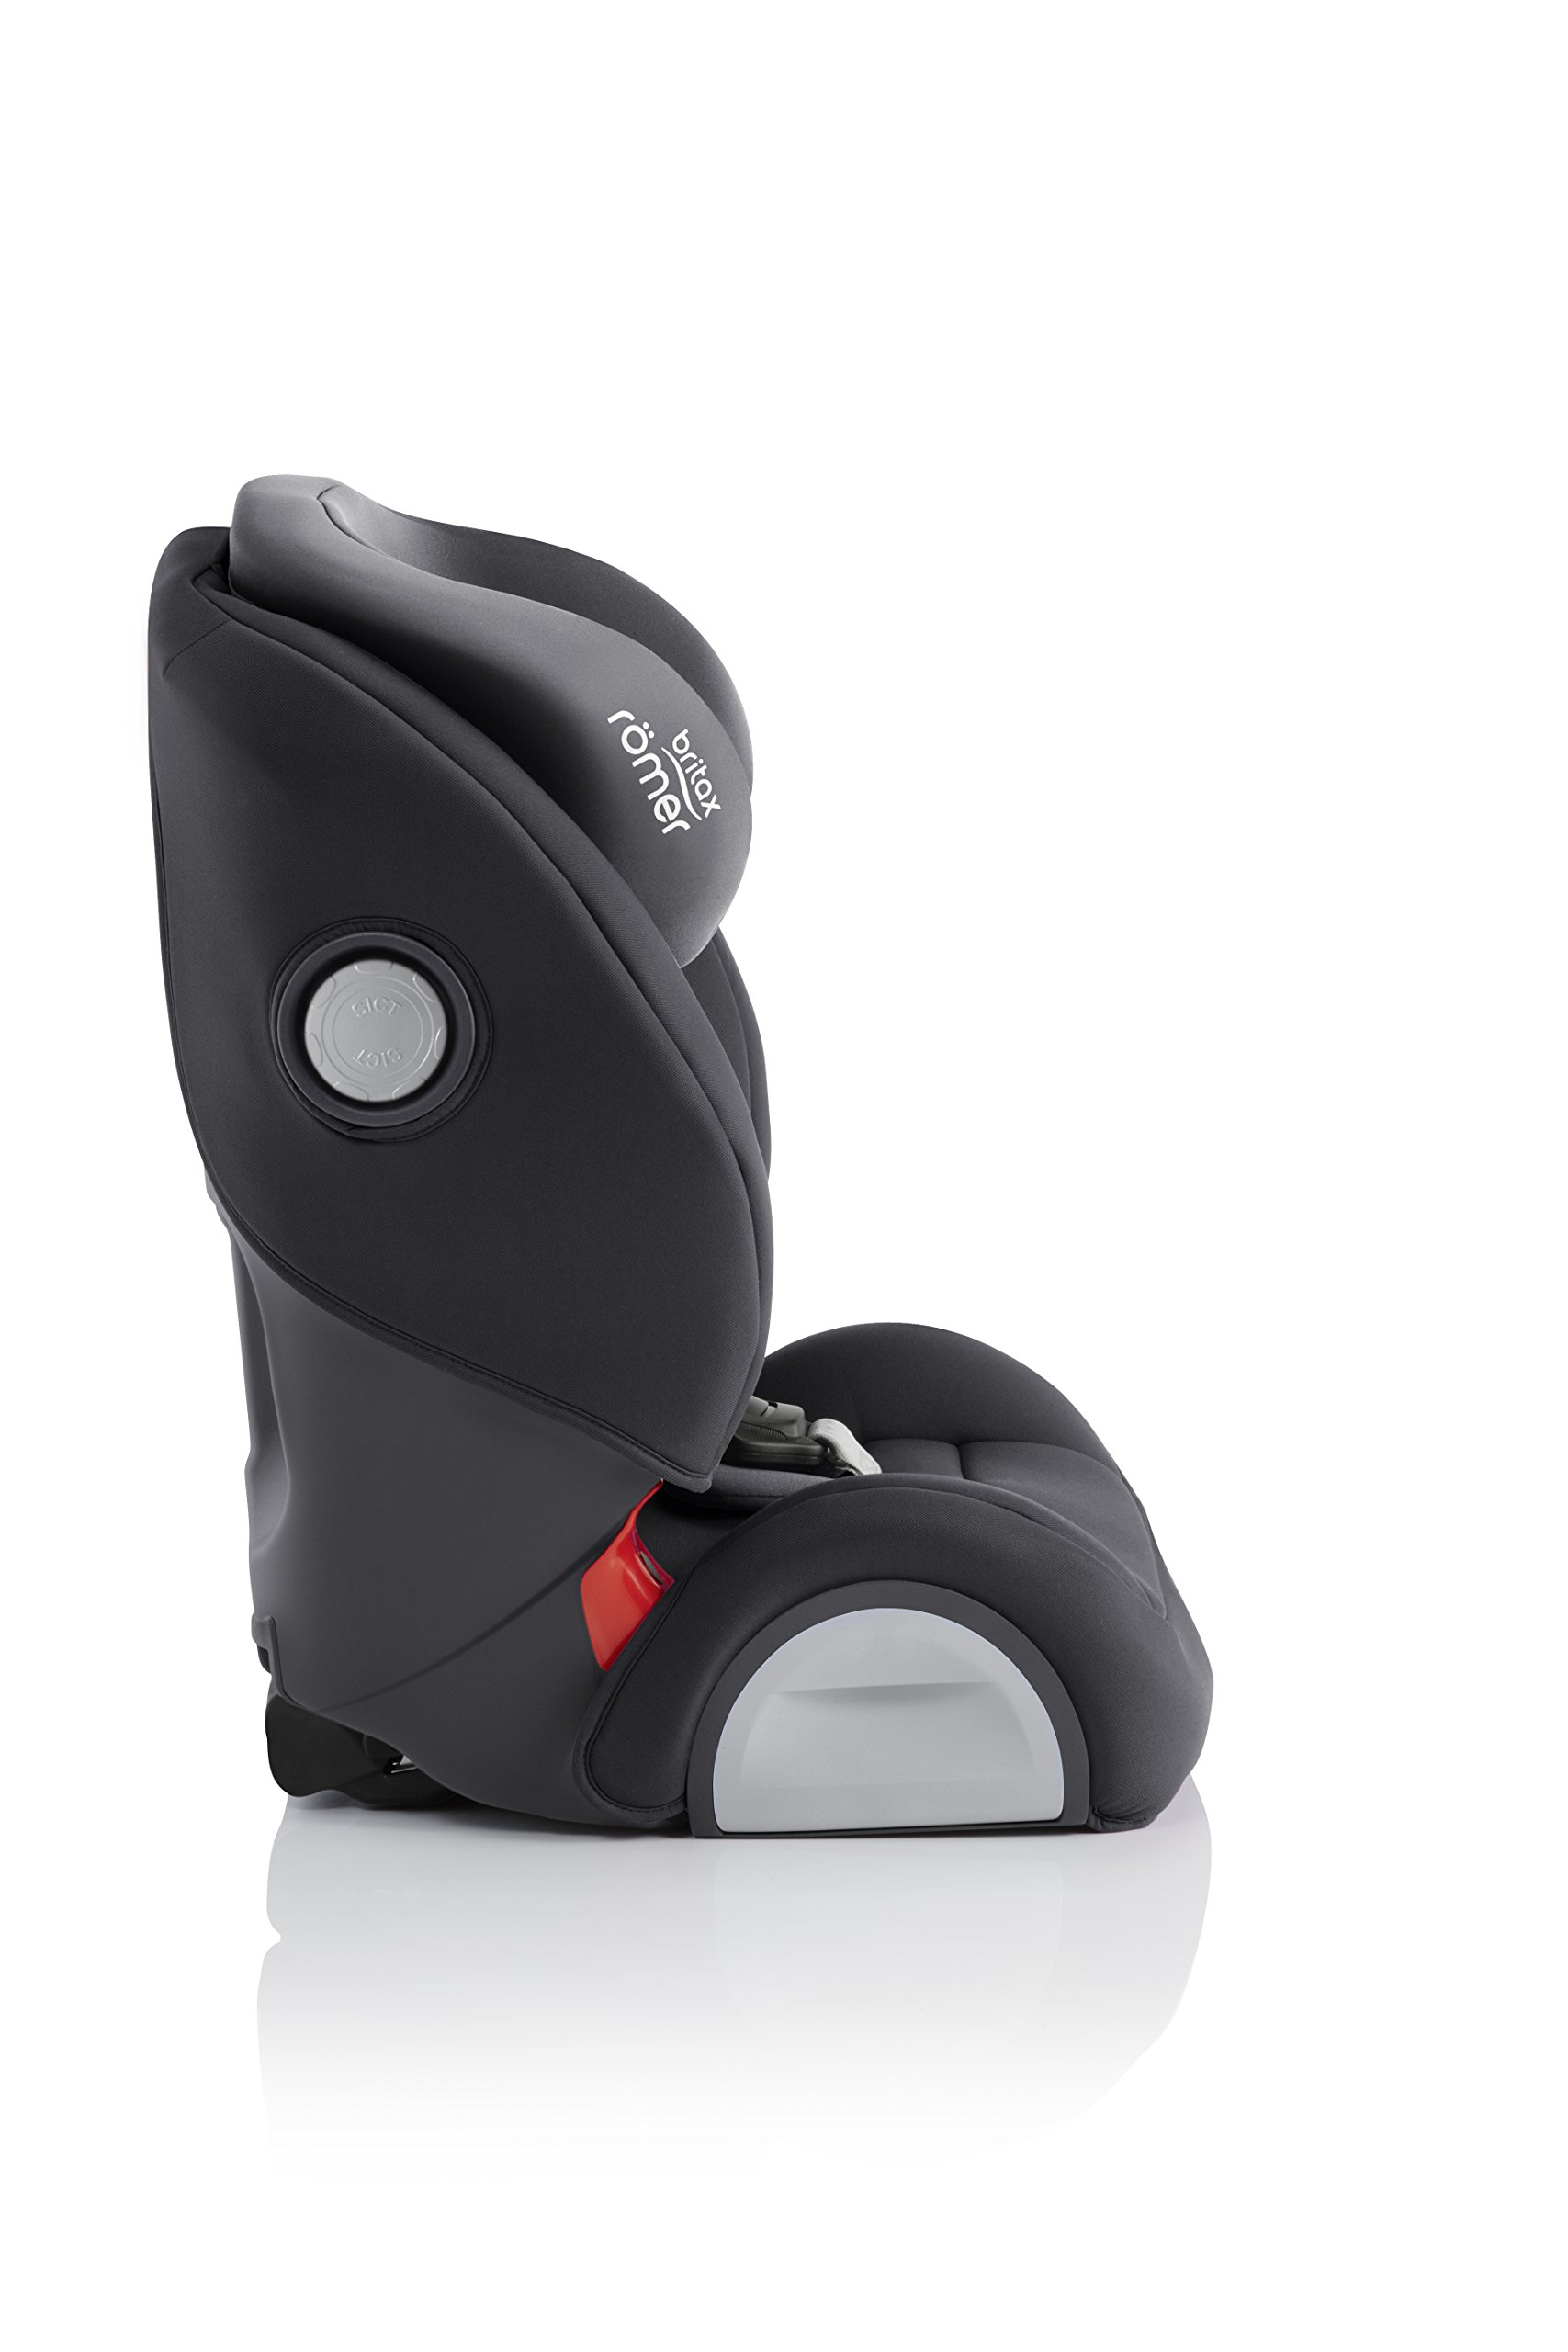 Britax Römer EVOLVA 1-2-3 SL SICT Group 1-2-3 (9-36kg) Car Seat - Storm Grey  Installation, ISOFIX and a 3-point seat belt, or 3-point seat belt only Advanced Side Impact Protection (SICT) minimises the force of an impact in a side collision CLICK & SAFE audible harness system for that extra reassurance when securing your child in the seat 4